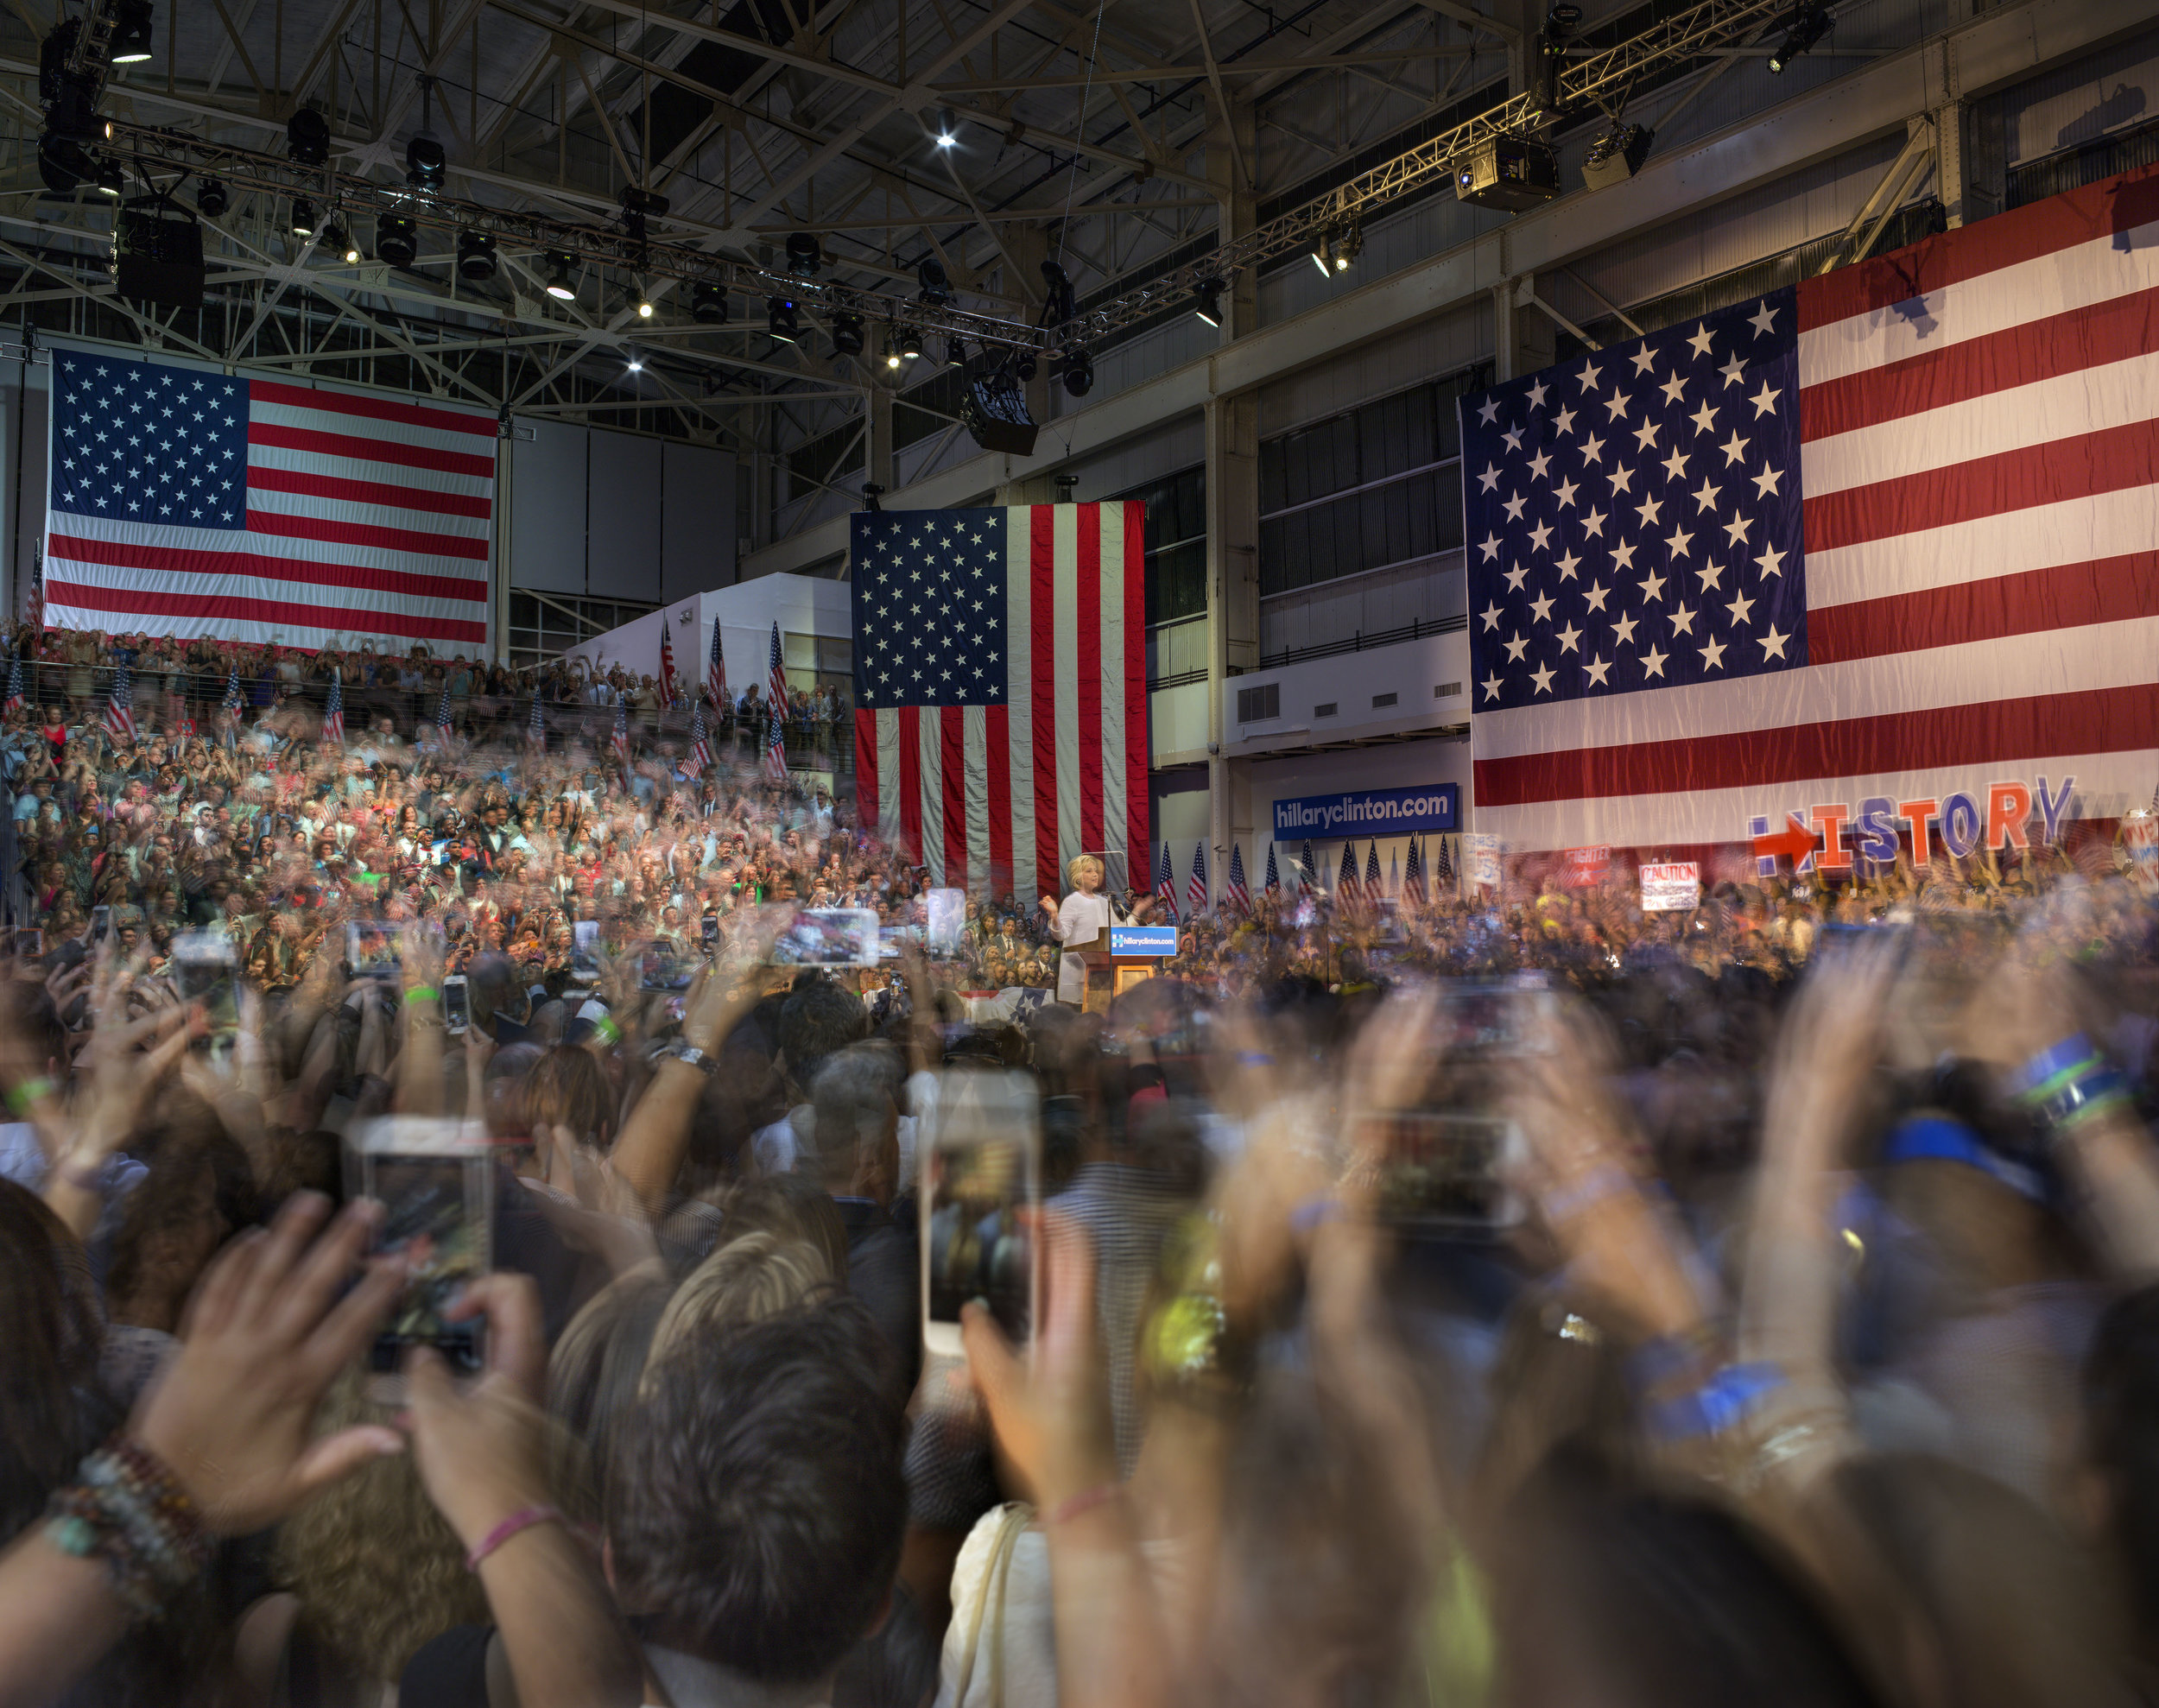 Matthew Pillsbury,  Hillary Clinton Becomes the Presumptive Democratic Nominee for the President of the United States , 2016.